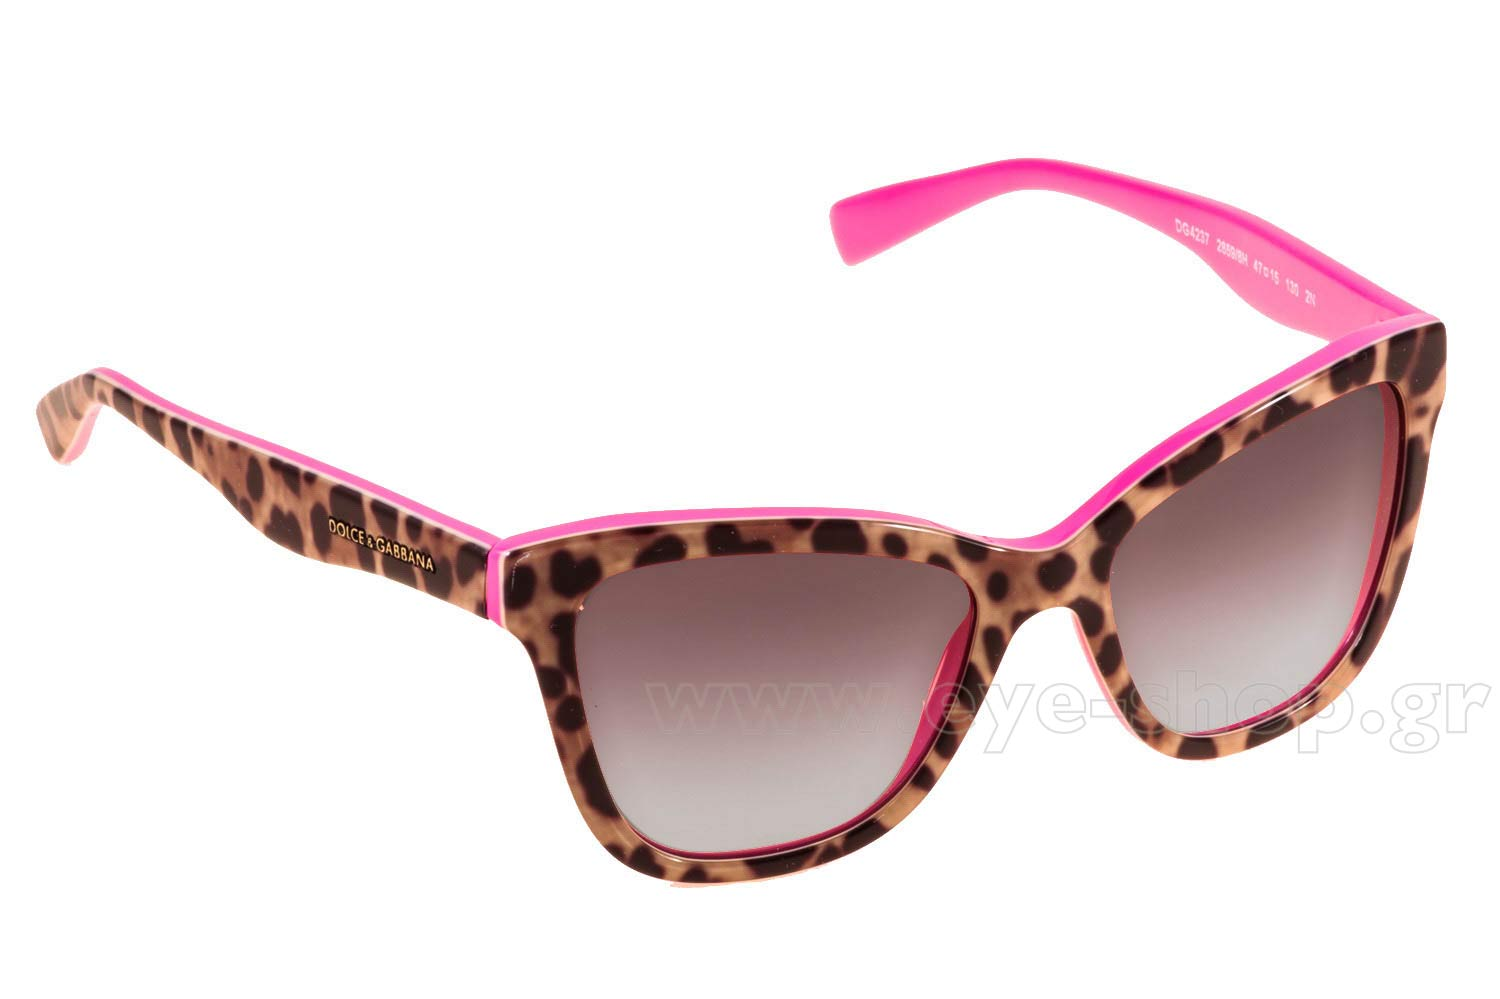 6dbcc87e0432 Cateye , color brown animal prints pink inside plastic , lenses pink  gradient plastic